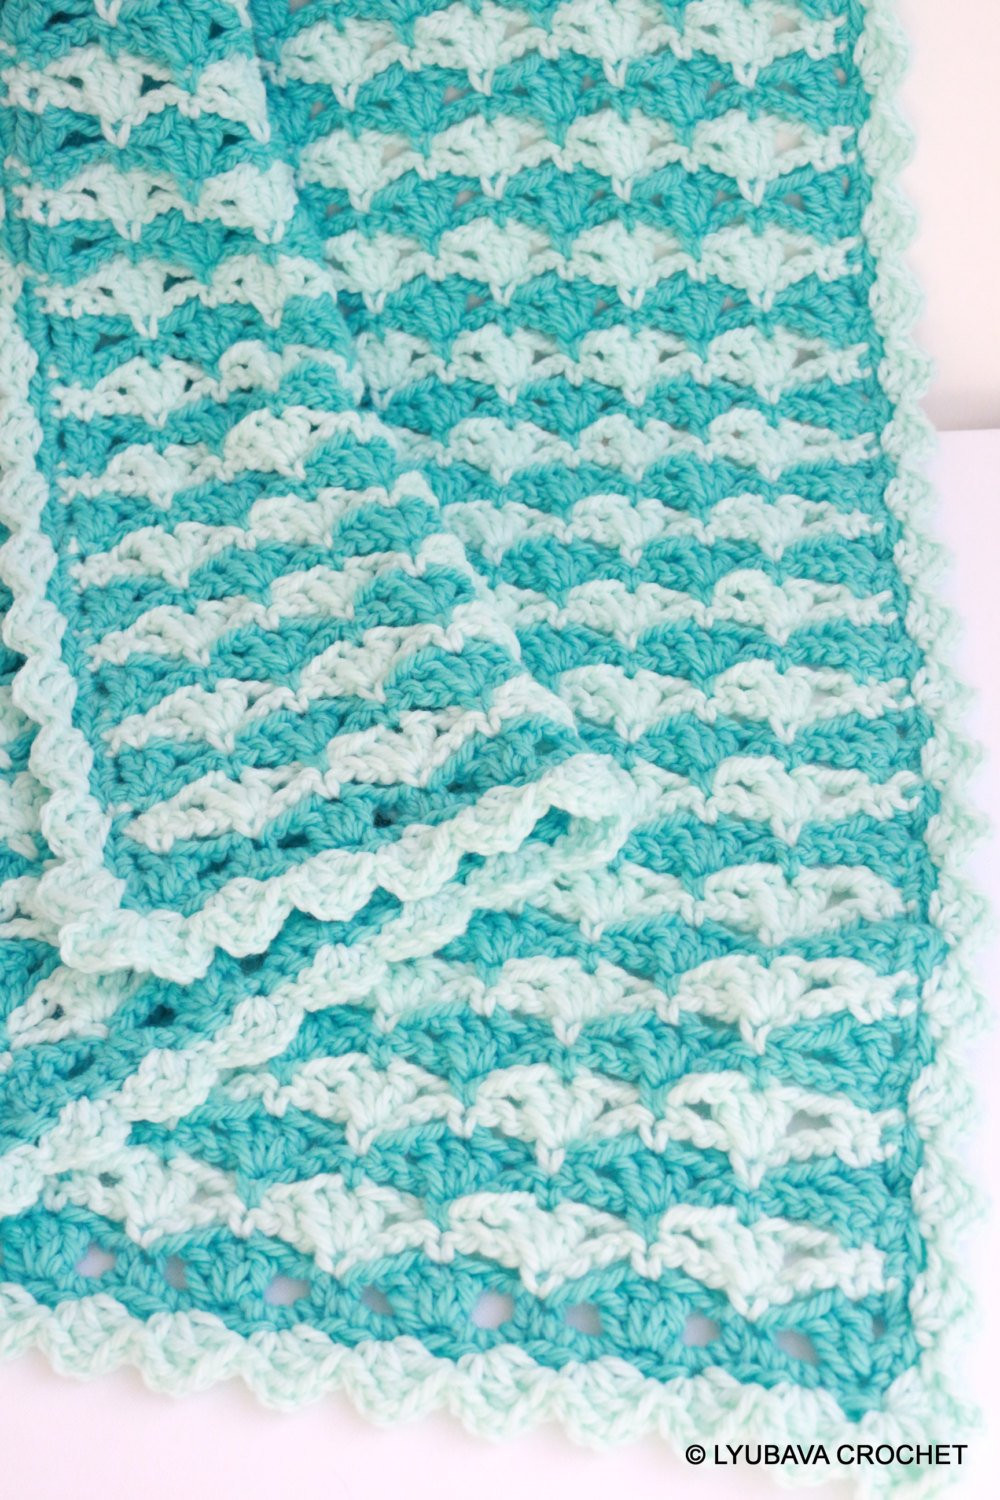 Baby Boy Crochet Blanket Patterns Inspirational Turquoise Baby Blanket Chunky Crochet Blanket for Baby Boy Of Baby Boy Crochet Blanket Patterns New Free Baby Boy Crochet Blanket Patterns